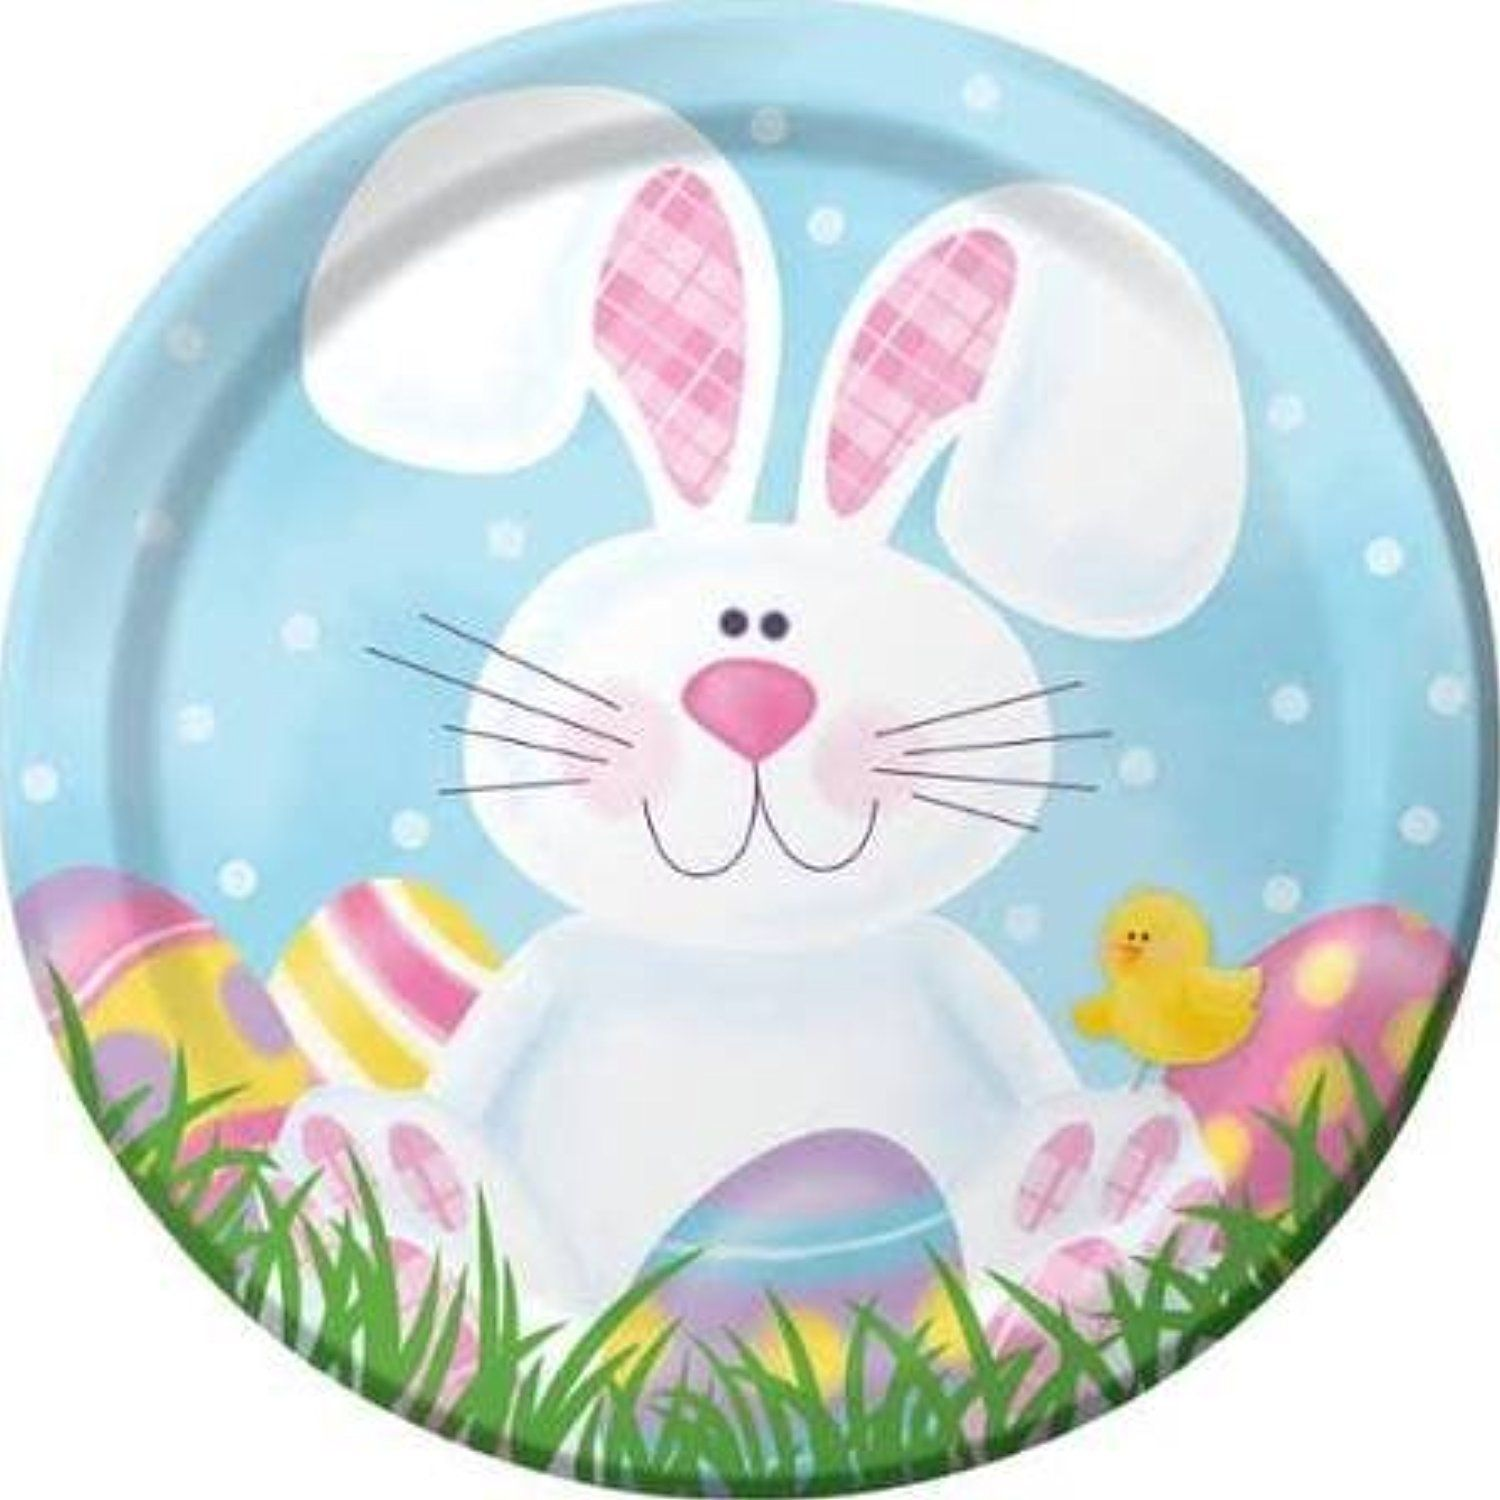 12 by 8 Count Cottontail Fun Dinner Plates - Case  sc 1 st  Pinterest & Hoffmaster Group 422198 9 in. 12 by 8 Count Cottontail Fun Dinner ...